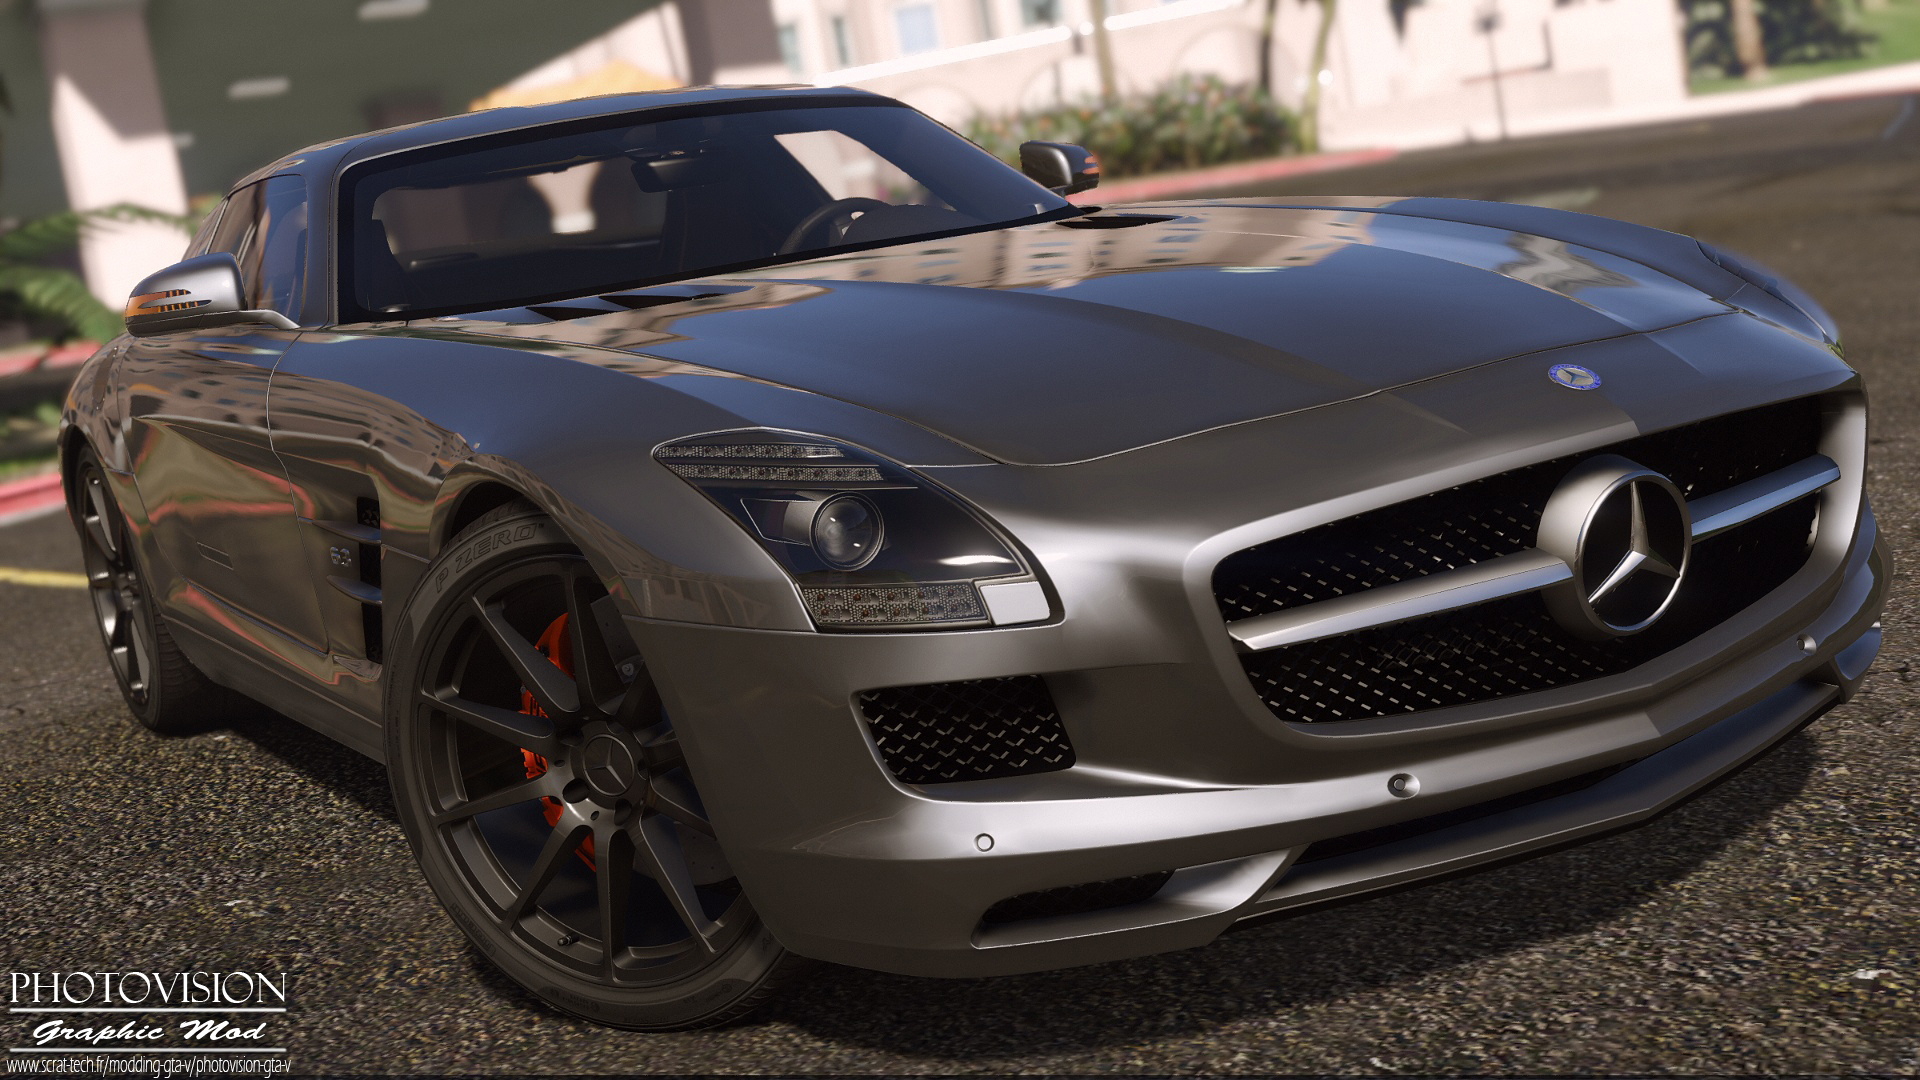 Mercedes - Benz Sls Amg Mercedes Benz Sls Amg Autovista Add On Replace